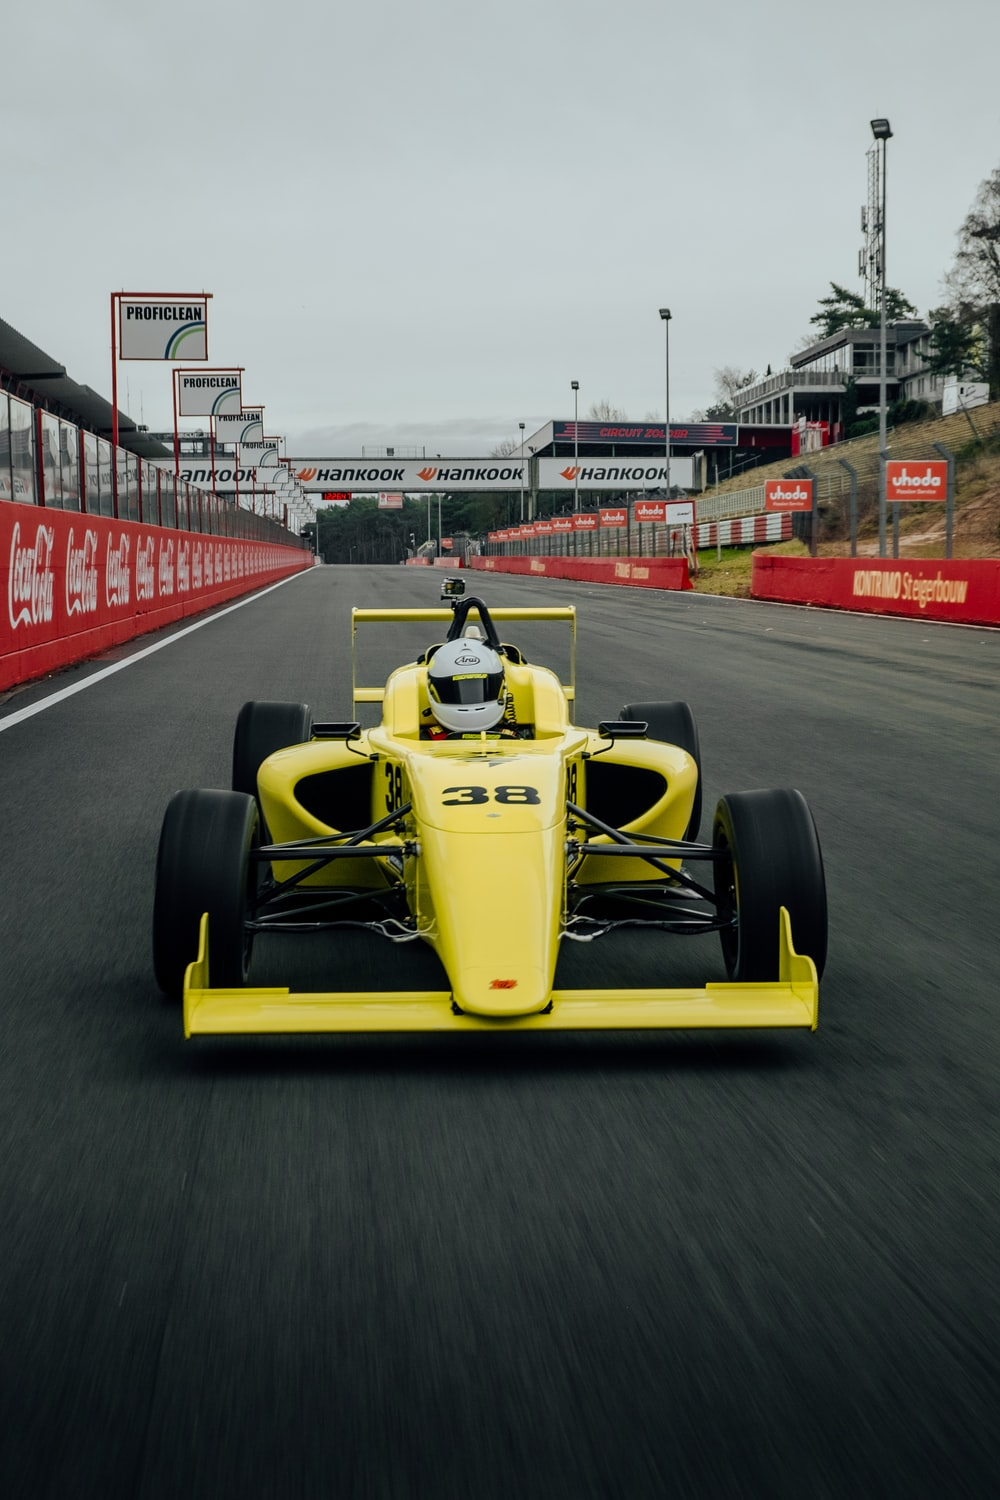 yellow and black f 1 car on road during daytime